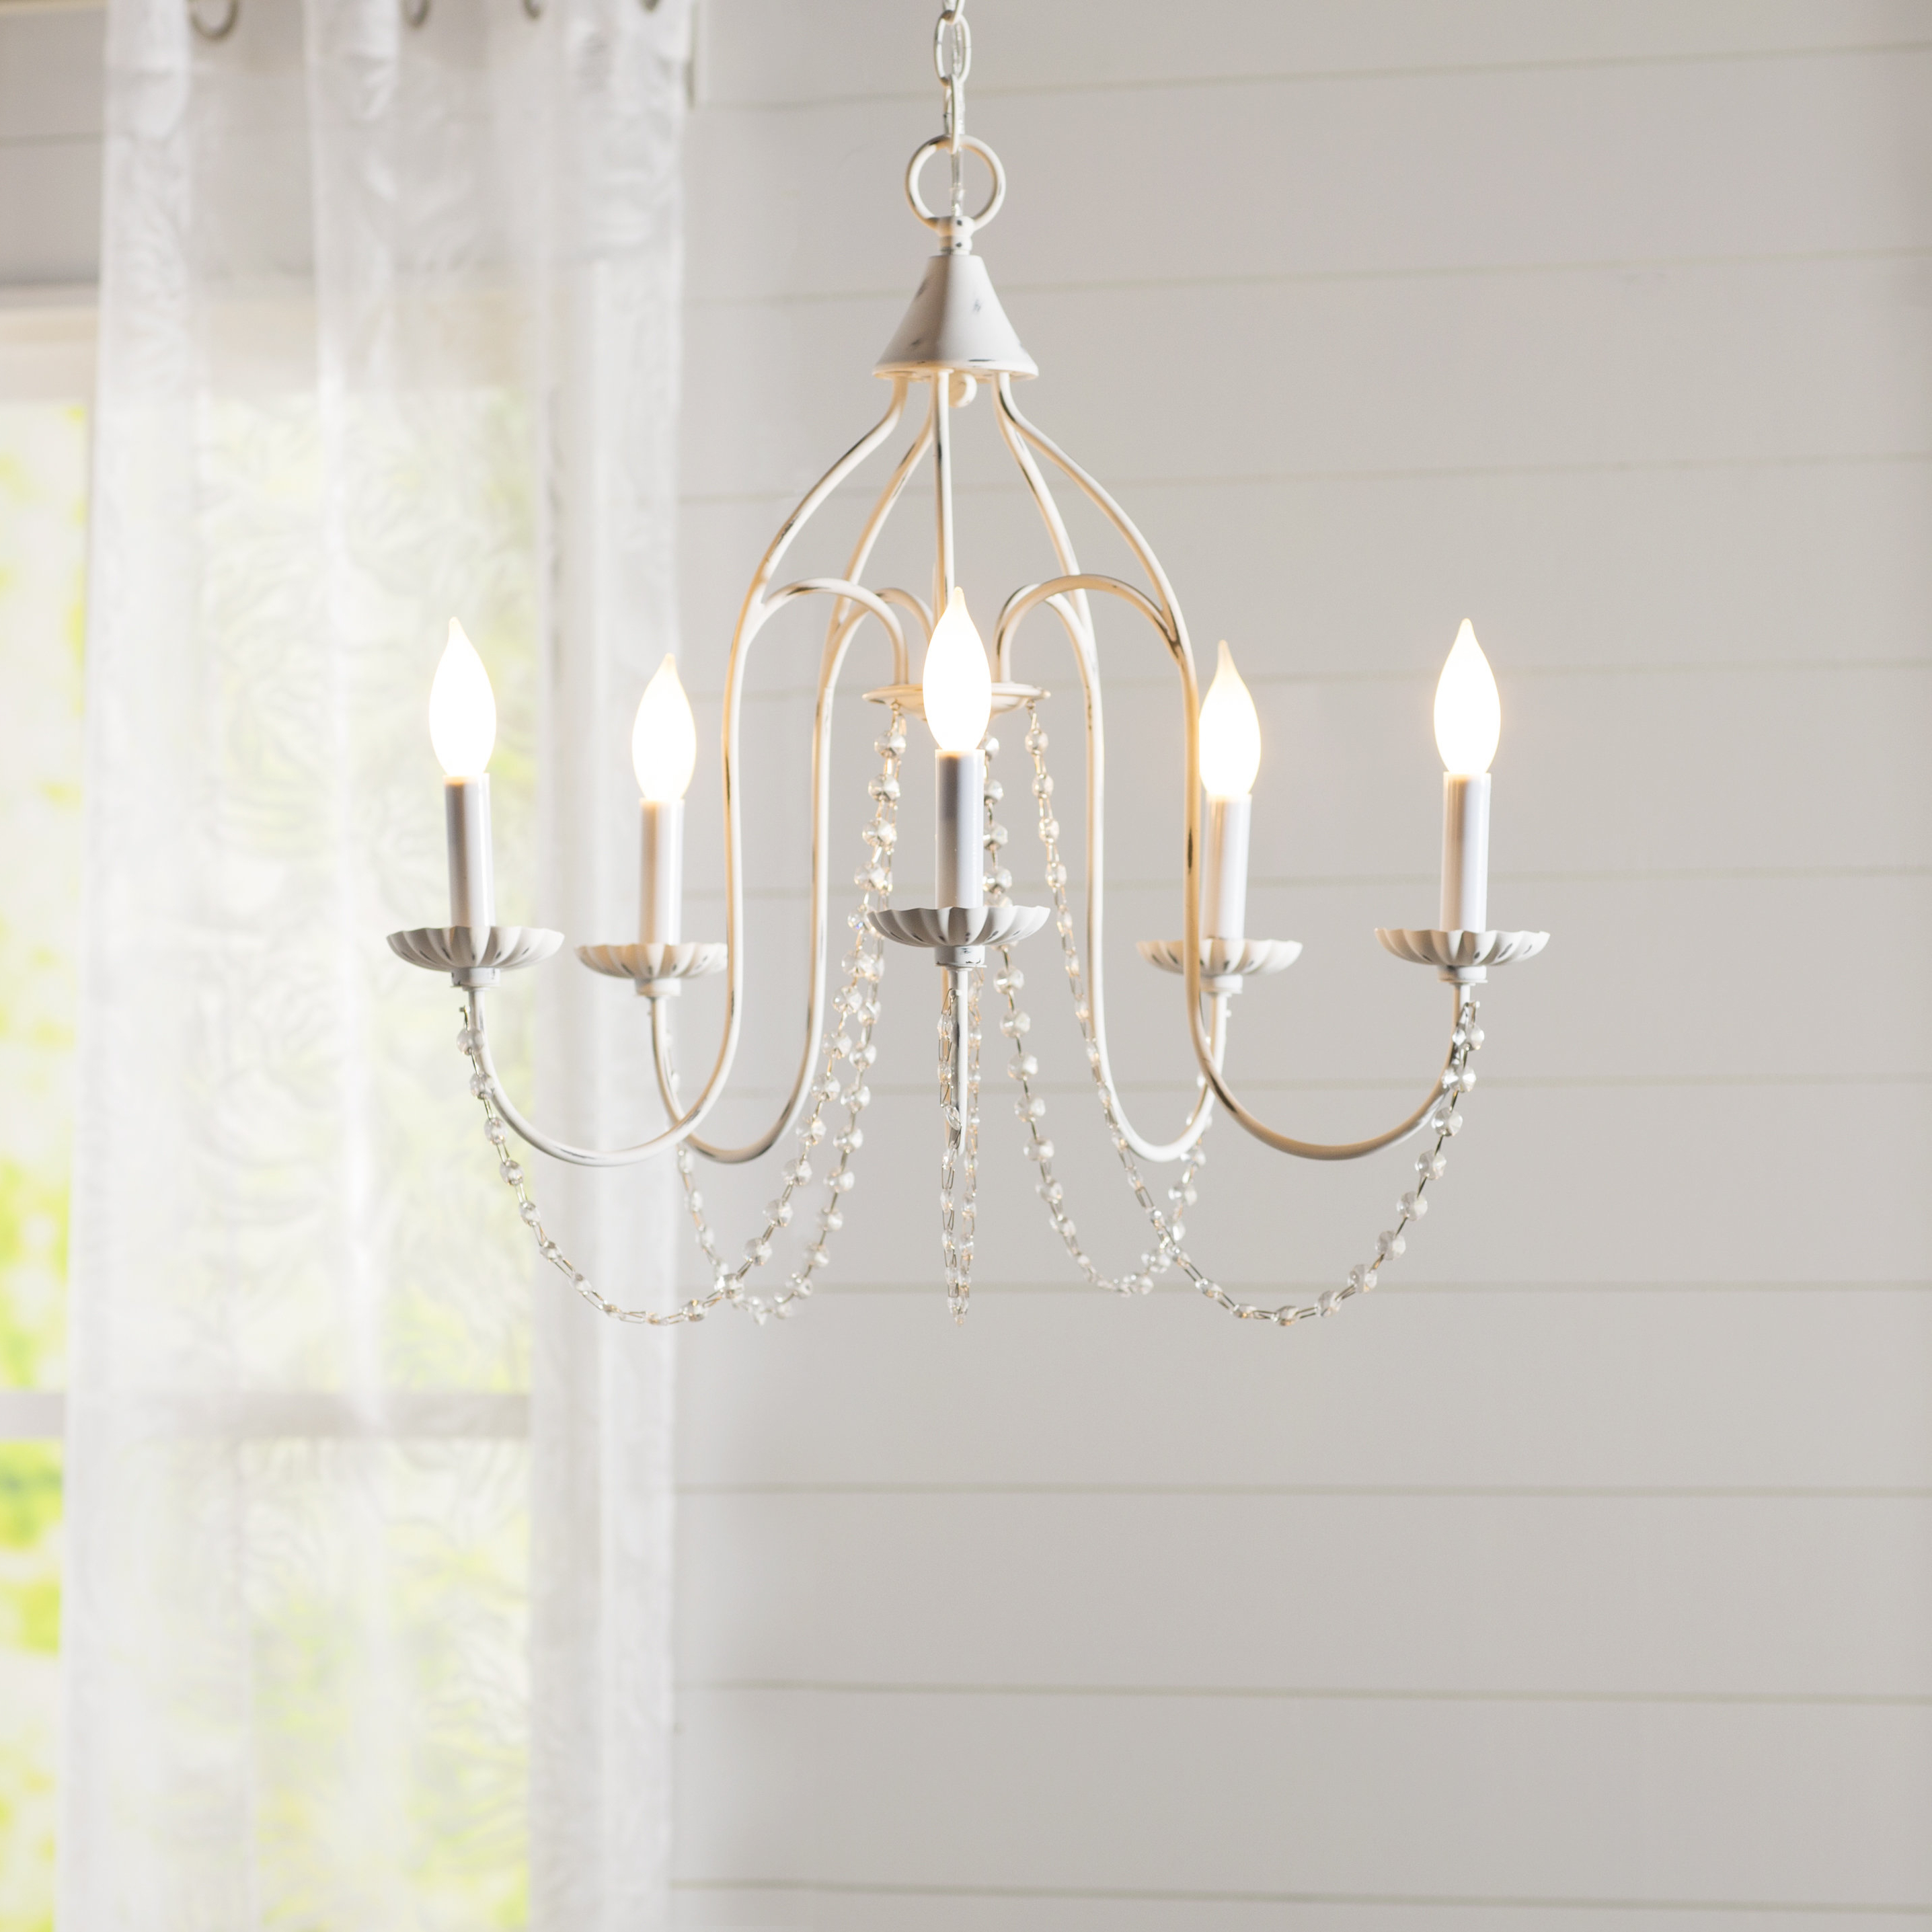 2020 Armande Candle Style Chandeliers regarding 29 Creative Rustic Style Lighting Fixture Plans To Complete Your